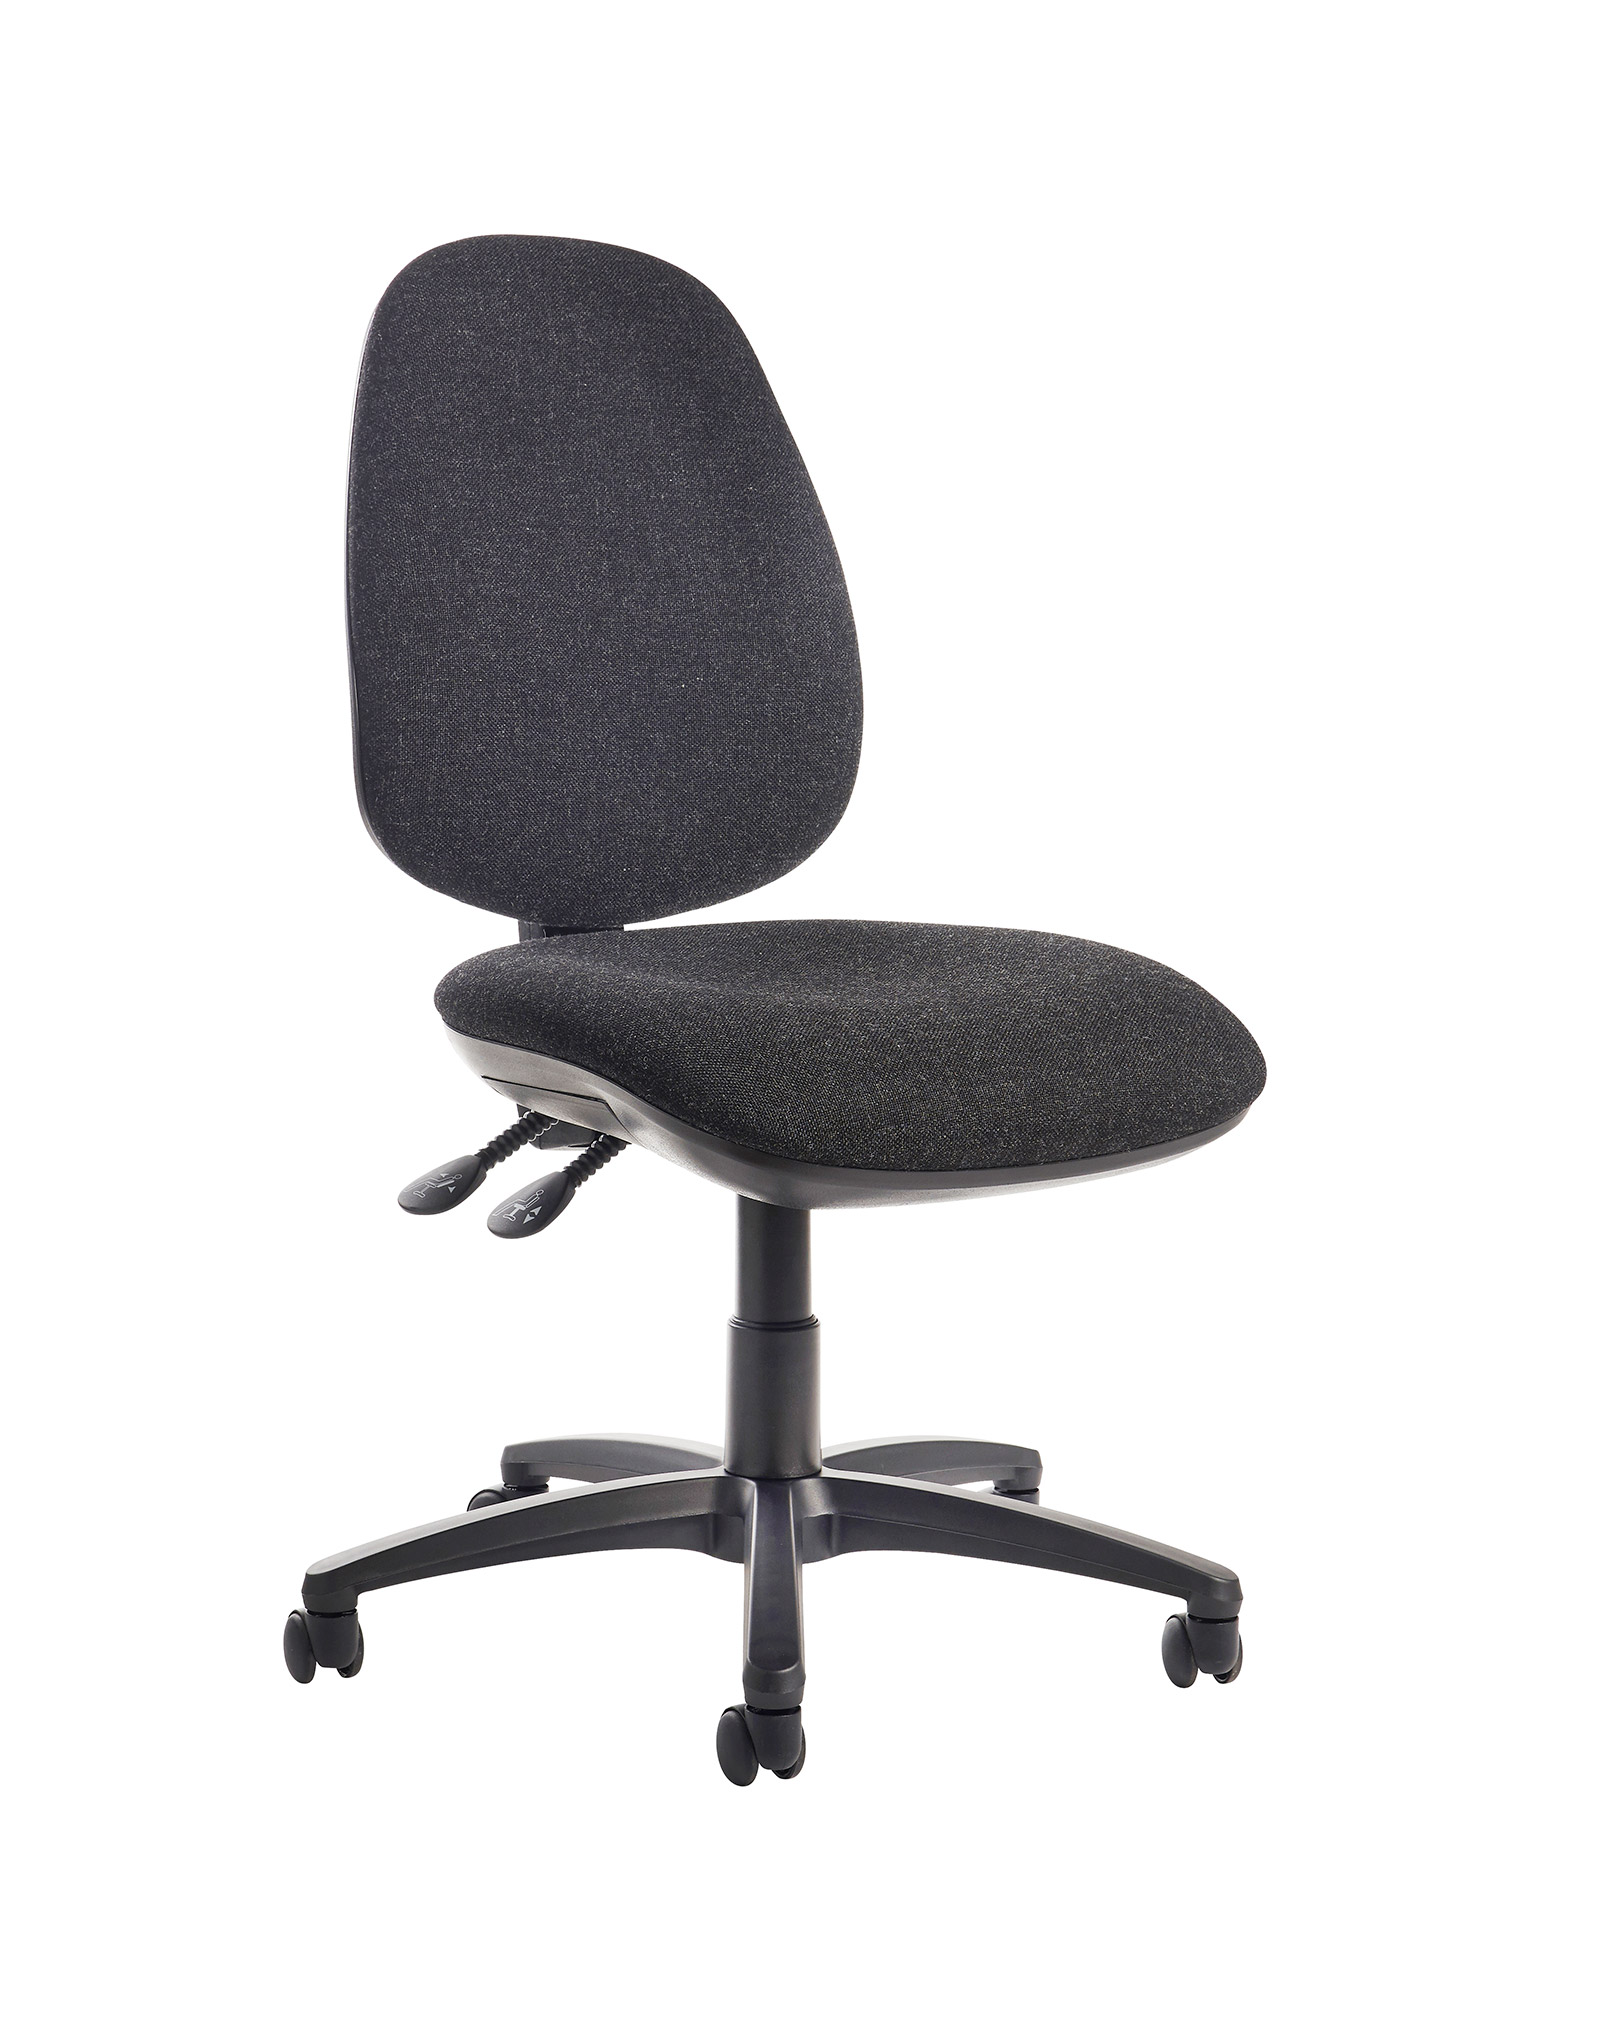 Jota high back operator chair with no arms - charcoal